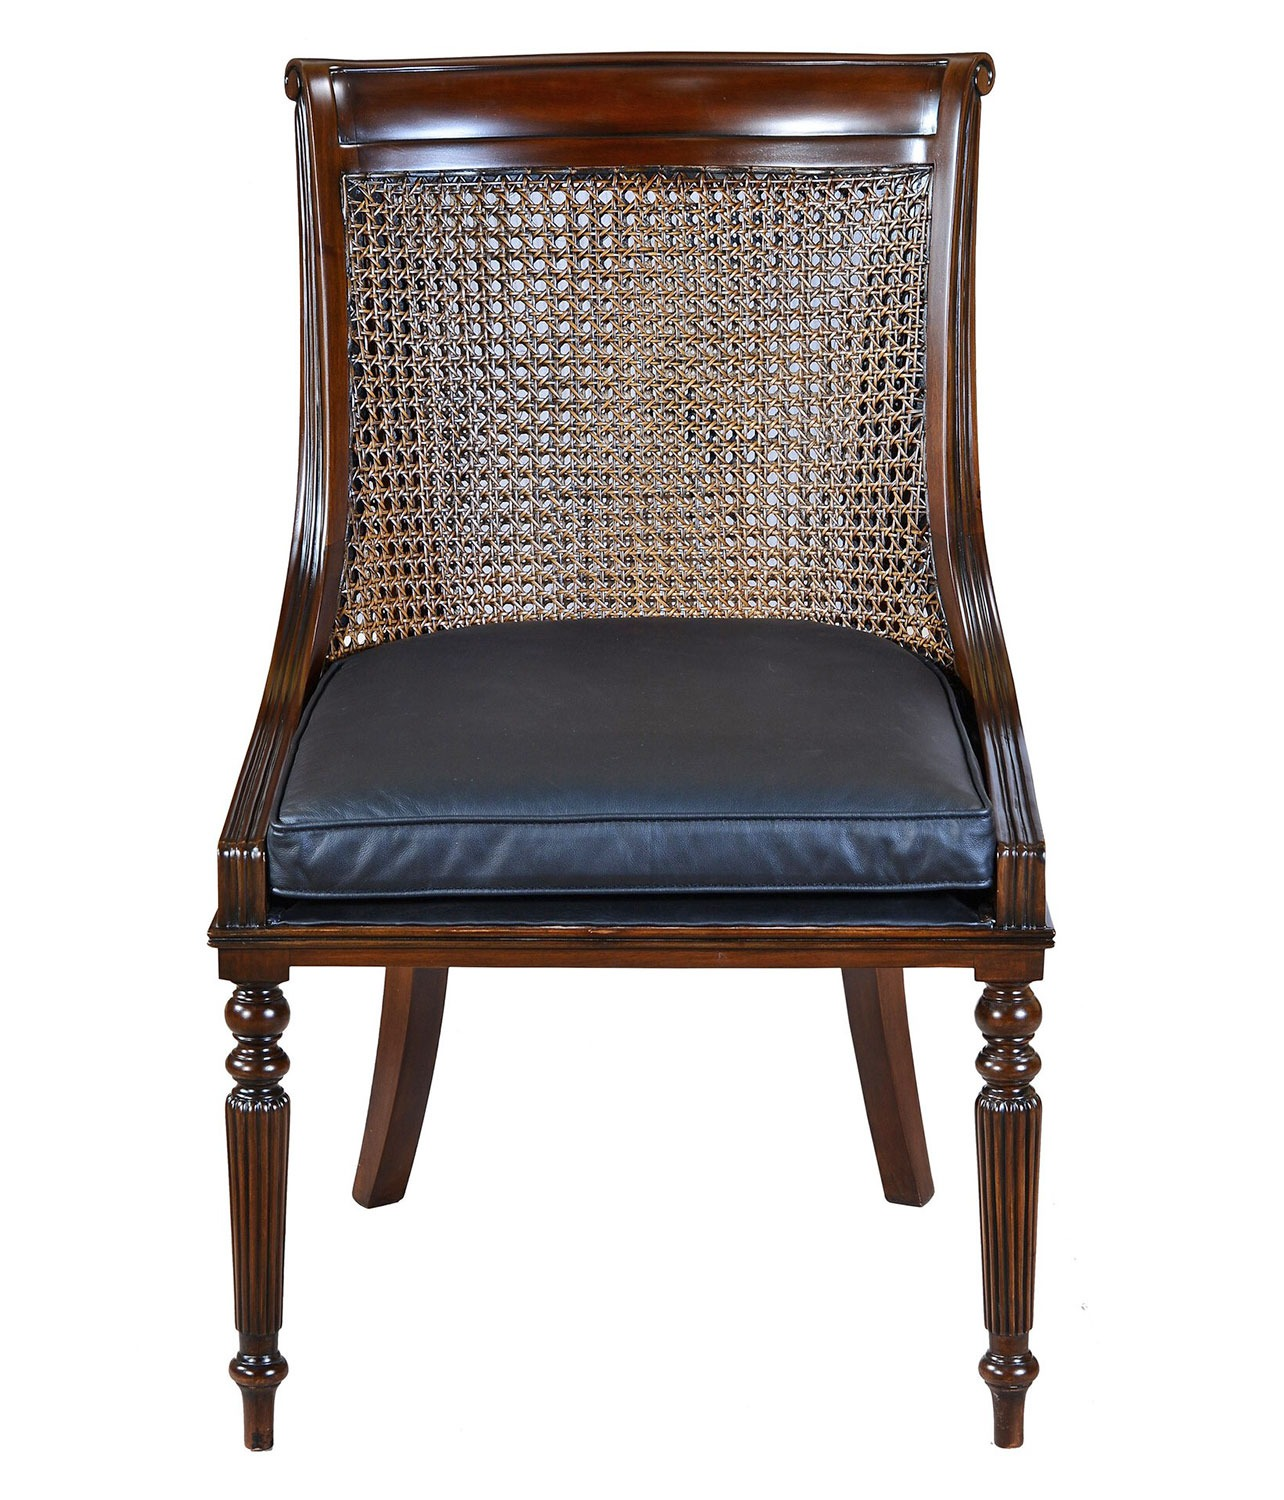 Scoop back mahogany and rattan chair